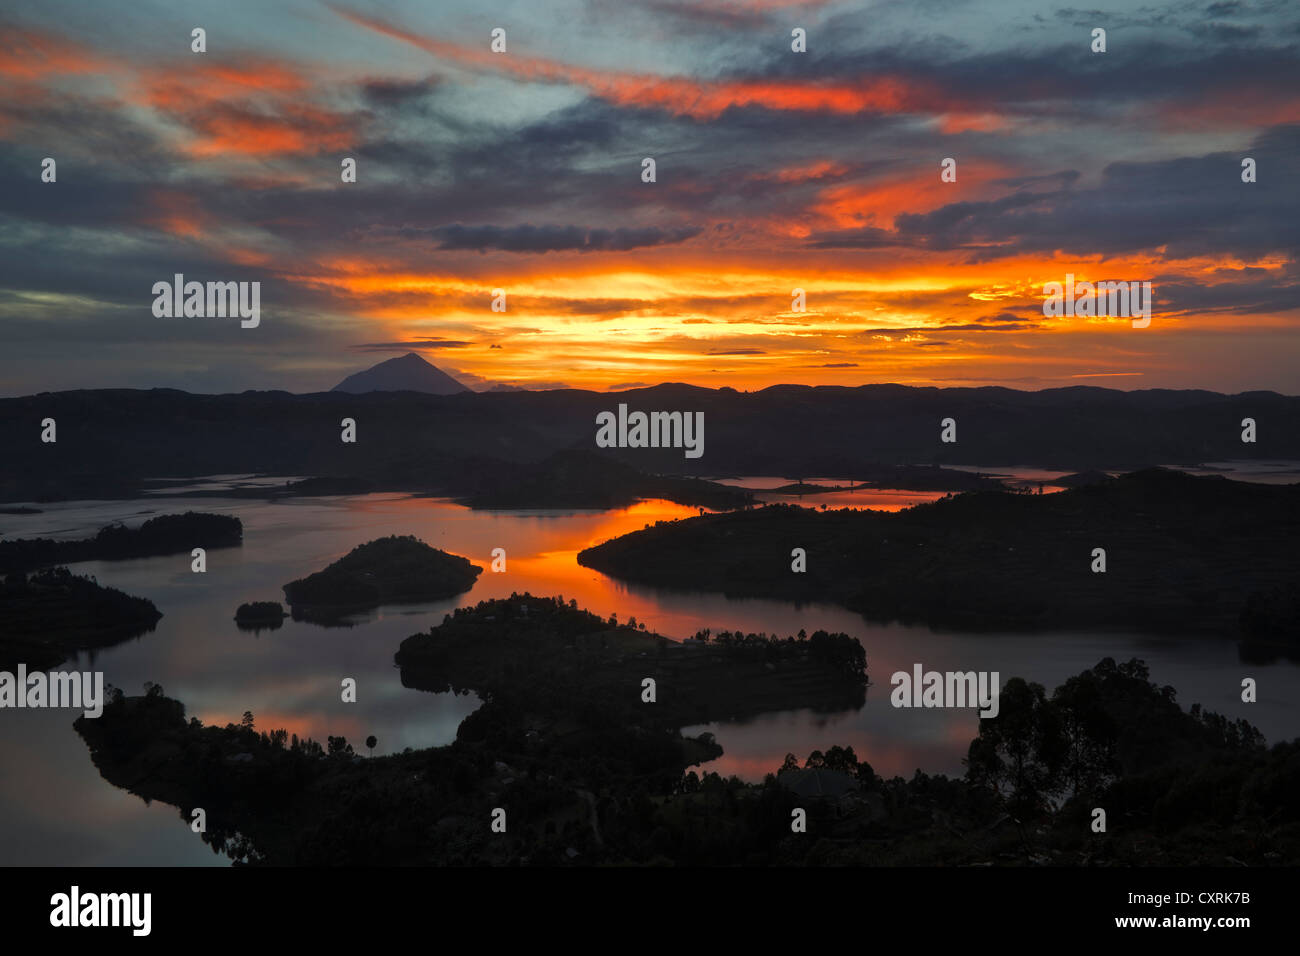 Lake Bunyonyi at sunset, Uganda, Africa - Stock Image